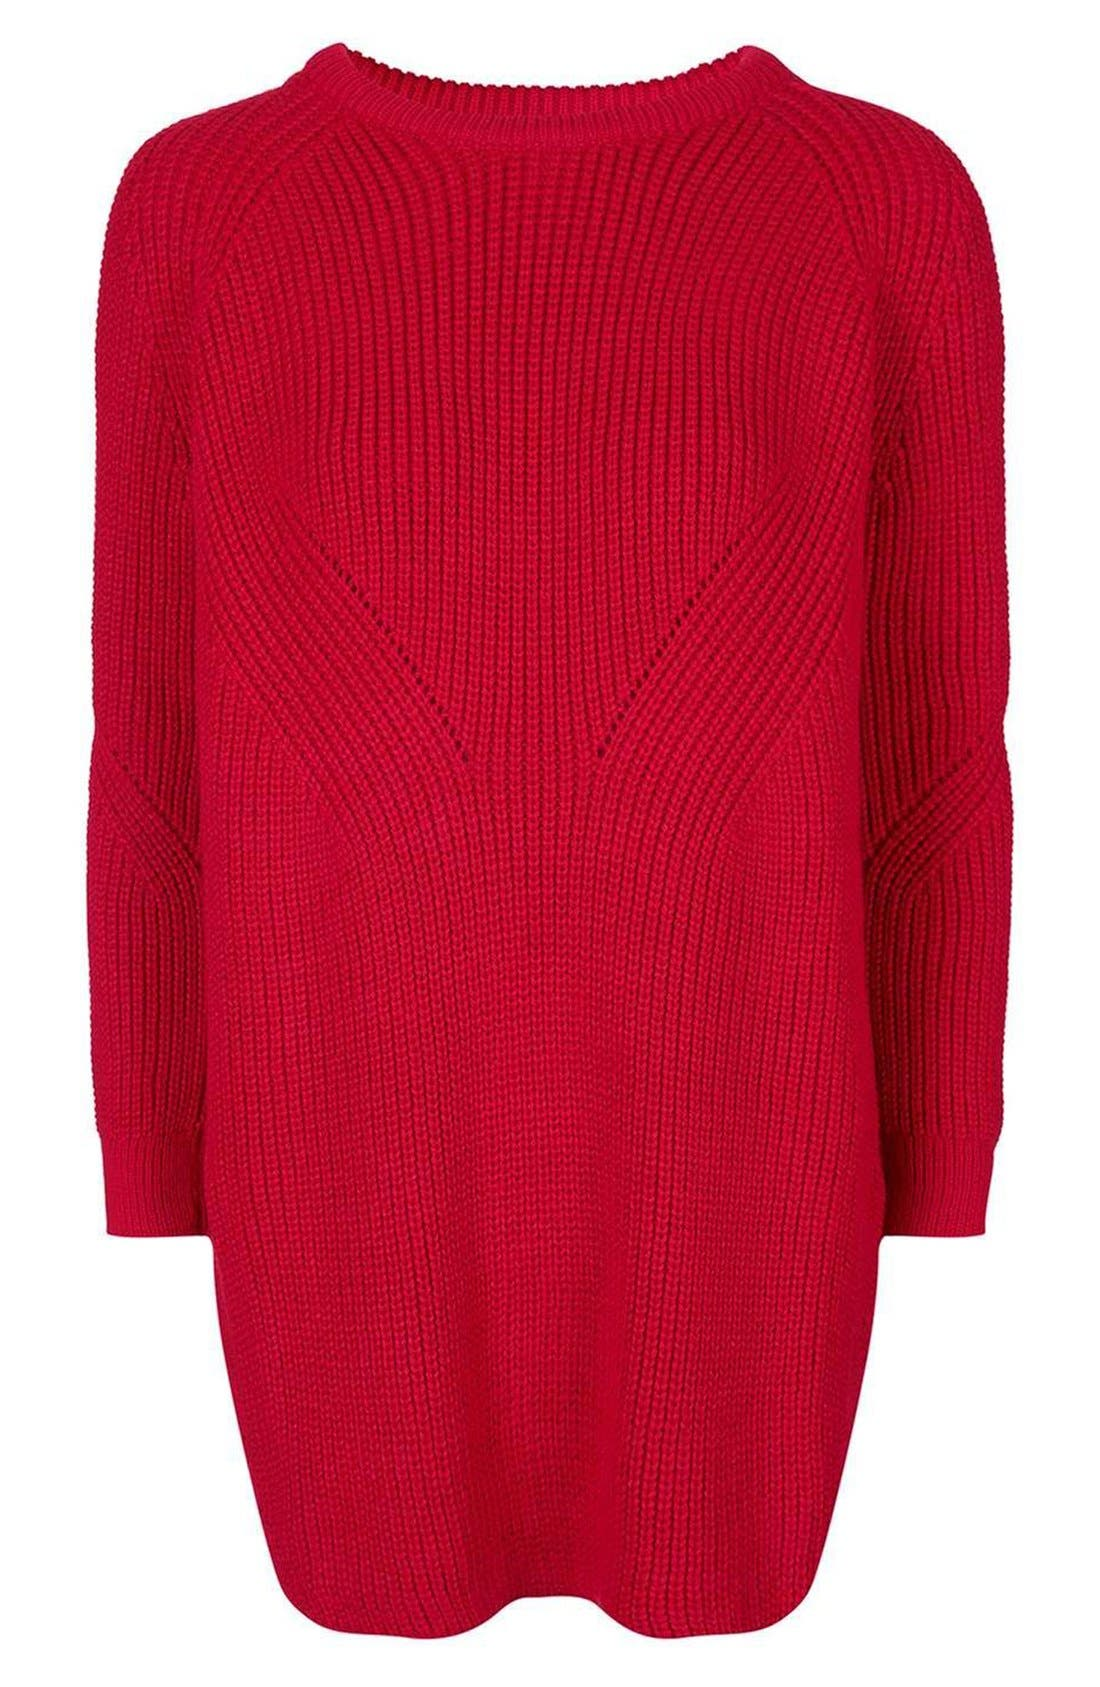 Ribbed Sweater Dress,                             Alternate thumbnail 4, color,                             600